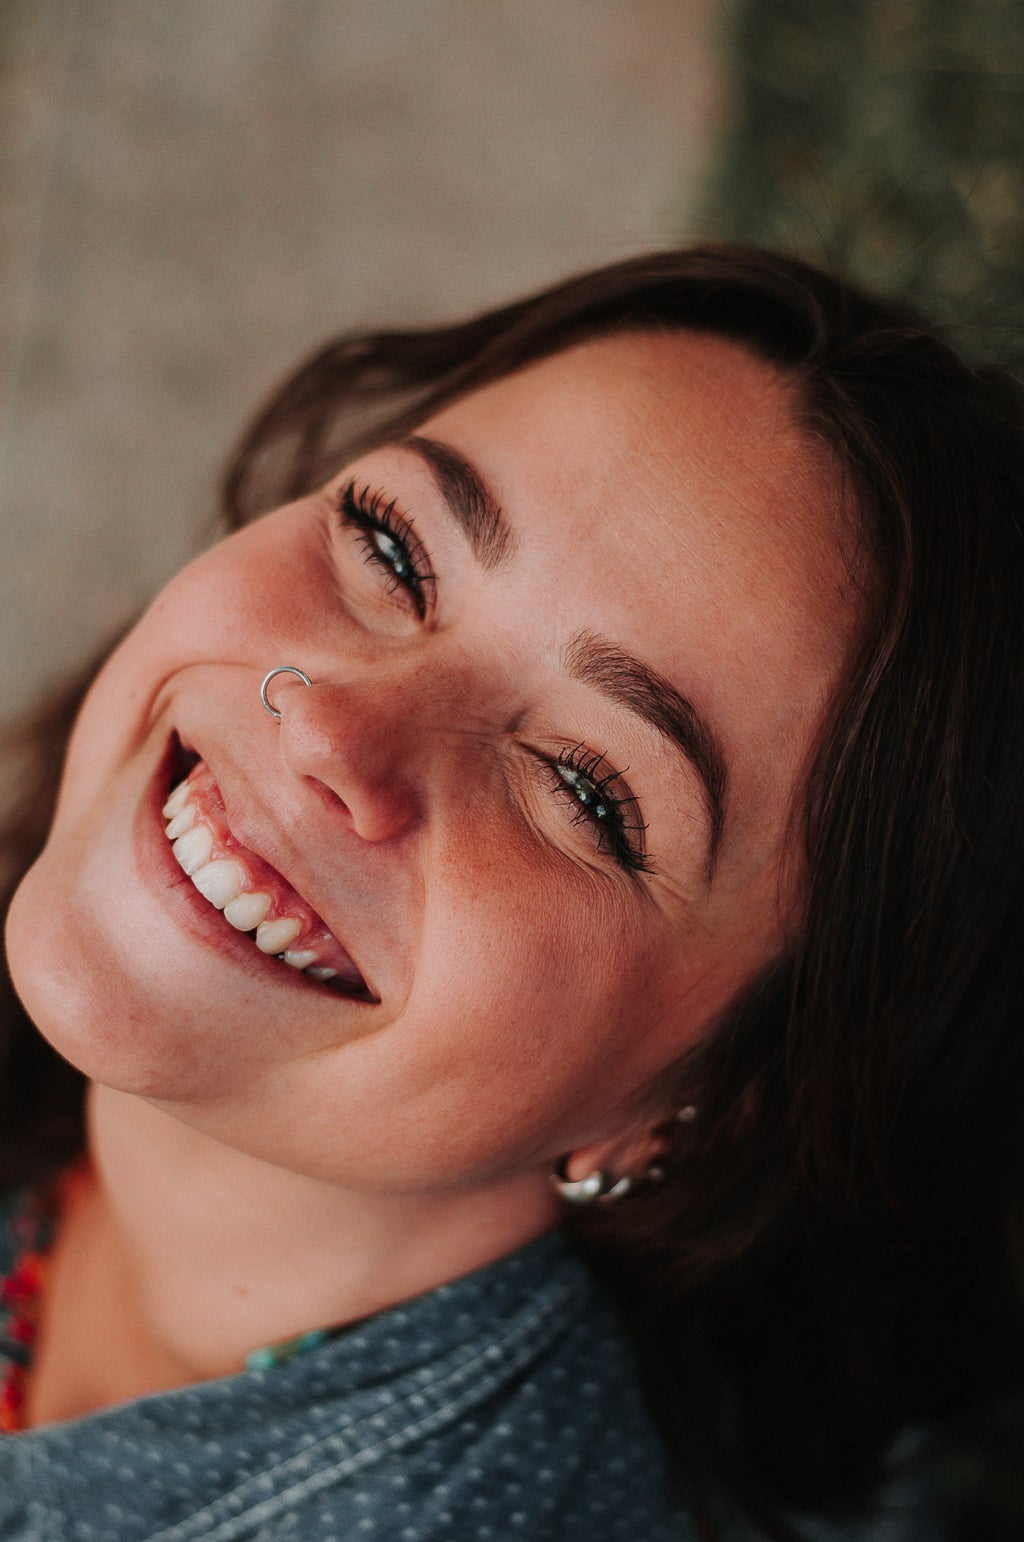 girl with nose piercing smiling